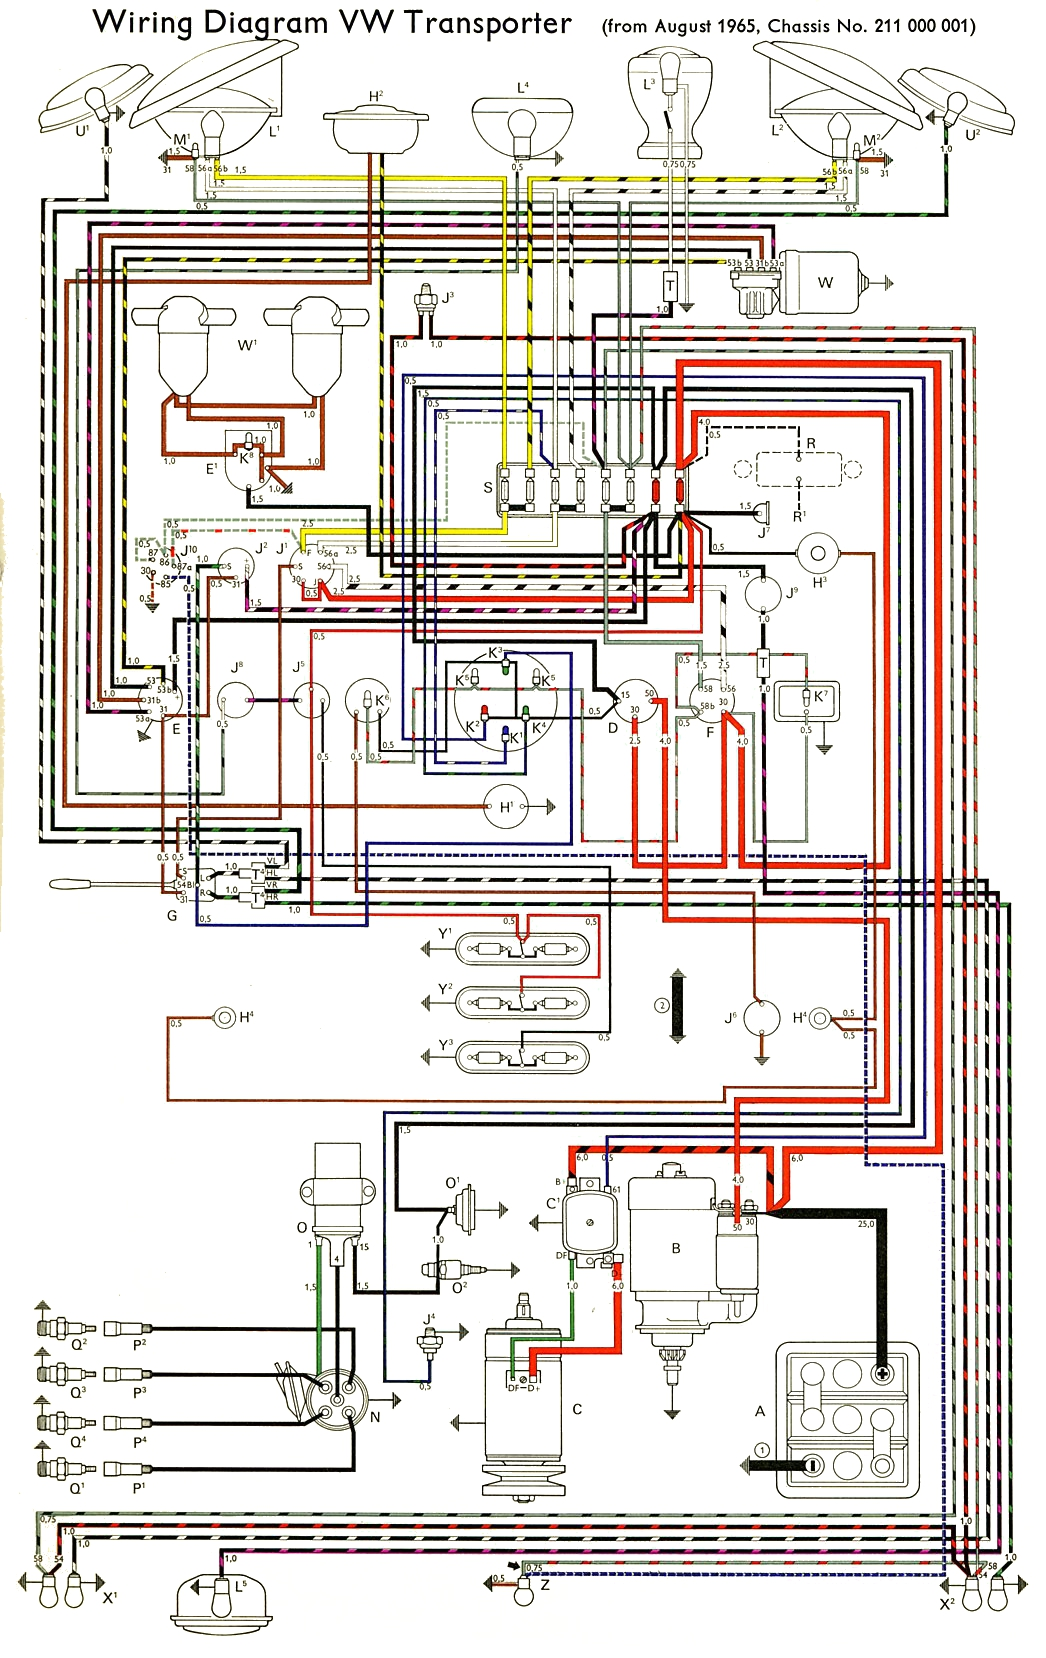 bus_66 71 vw bus wiring diagram 1970 vw bus fuse box diagram \u2022 wiring vw transporter wiring diagram t5 at edmiracle.co